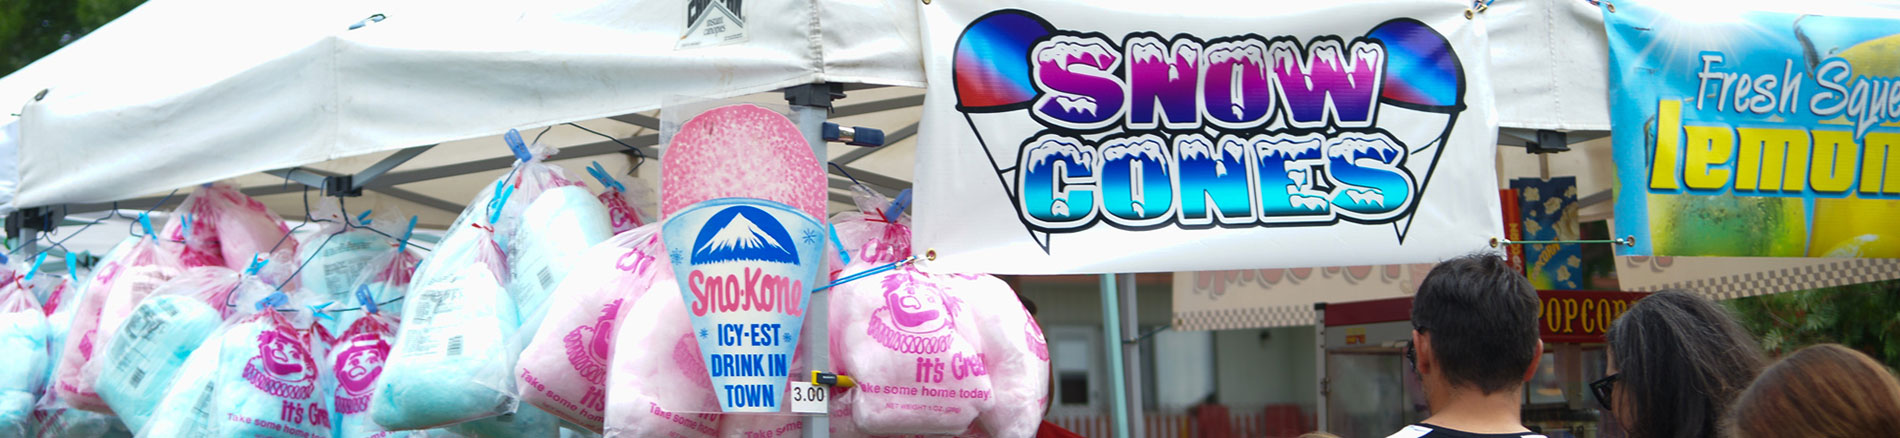 Cotton Candy and Snow Cones at a food tent